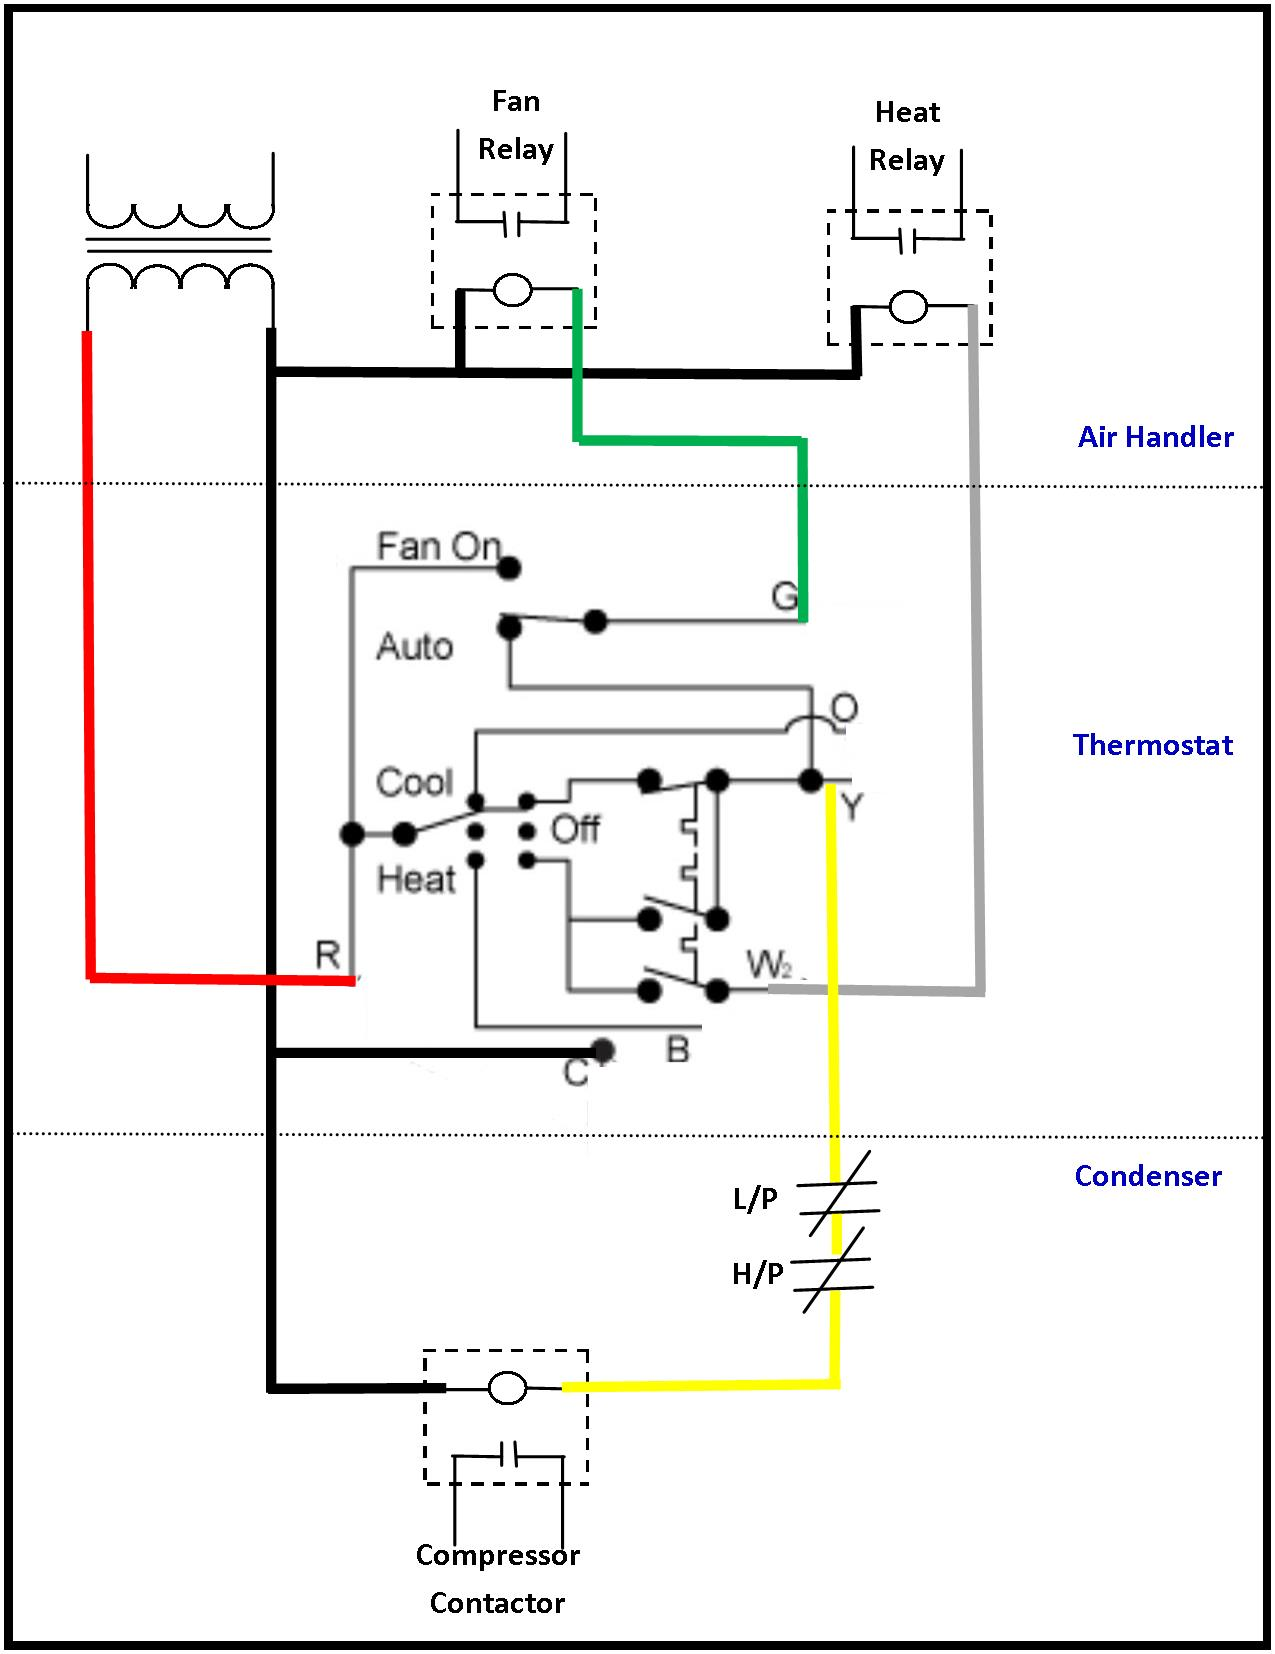 hvac wire diagram hvac image wiring diagram hvac compressor wiring diagram hvac wiring diagrams on hvac wire diagram